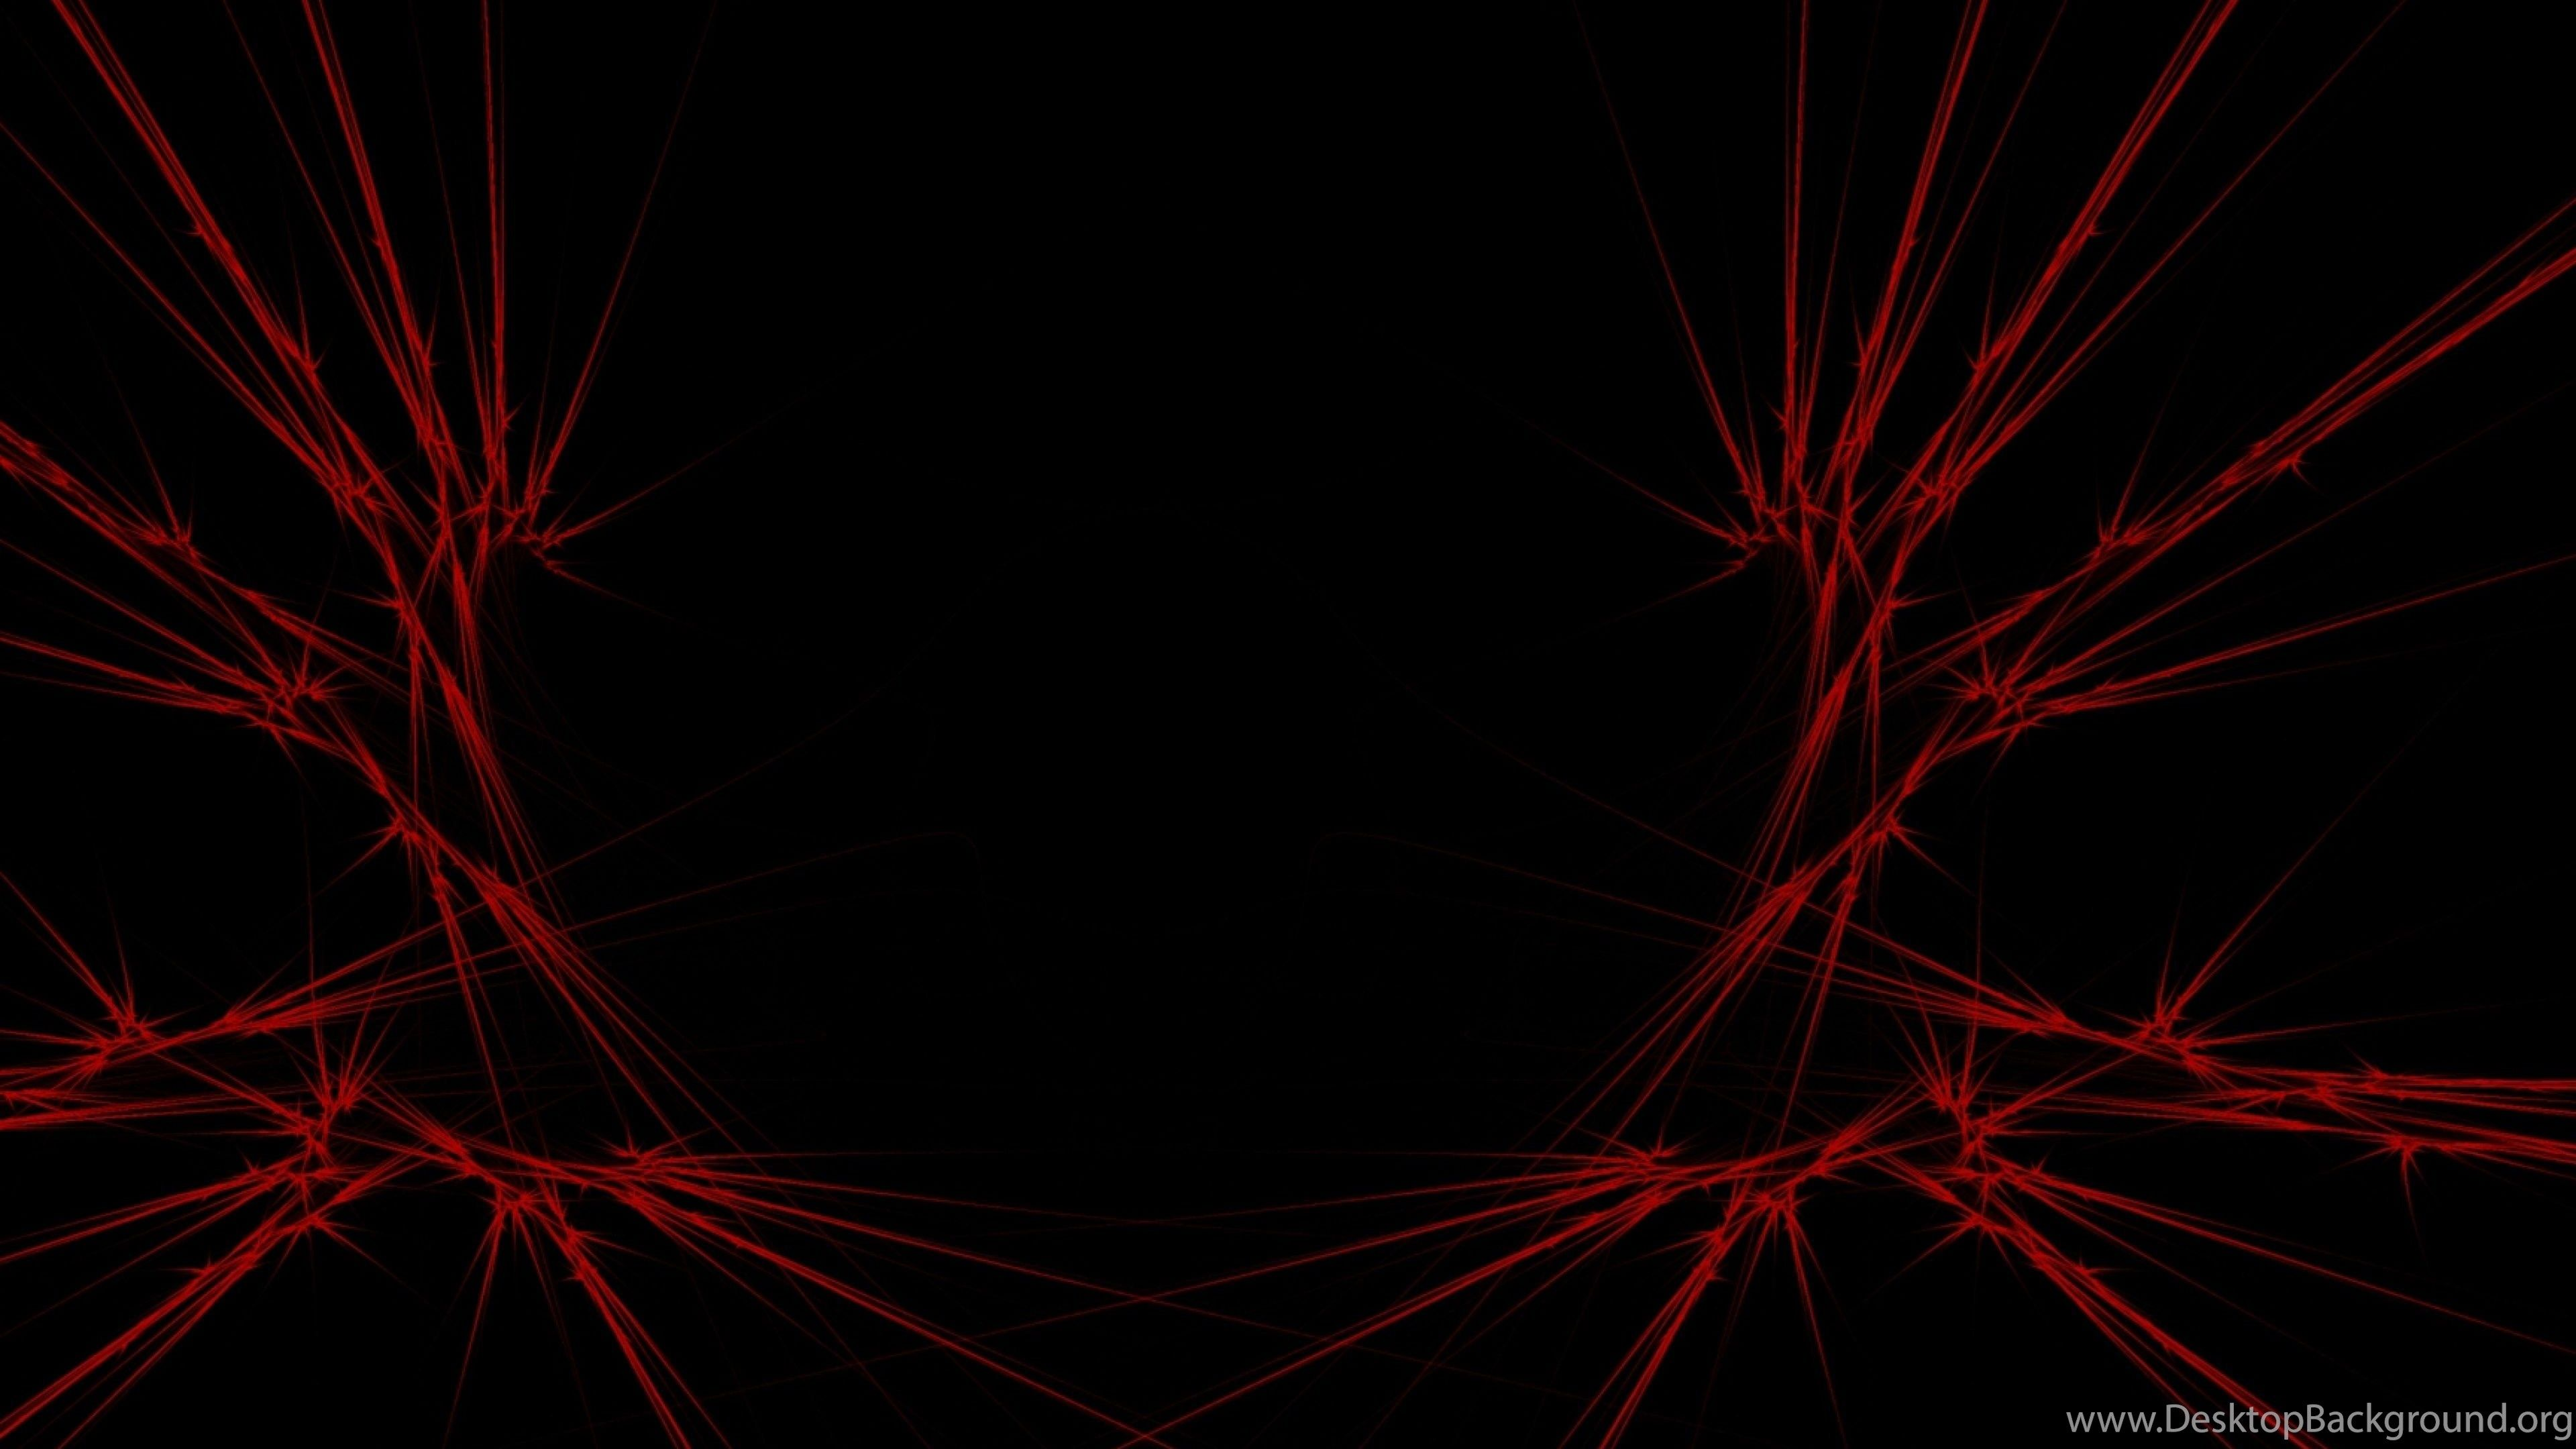 Red And Black Desktop Wallpaper Posted By Michelle Peltier